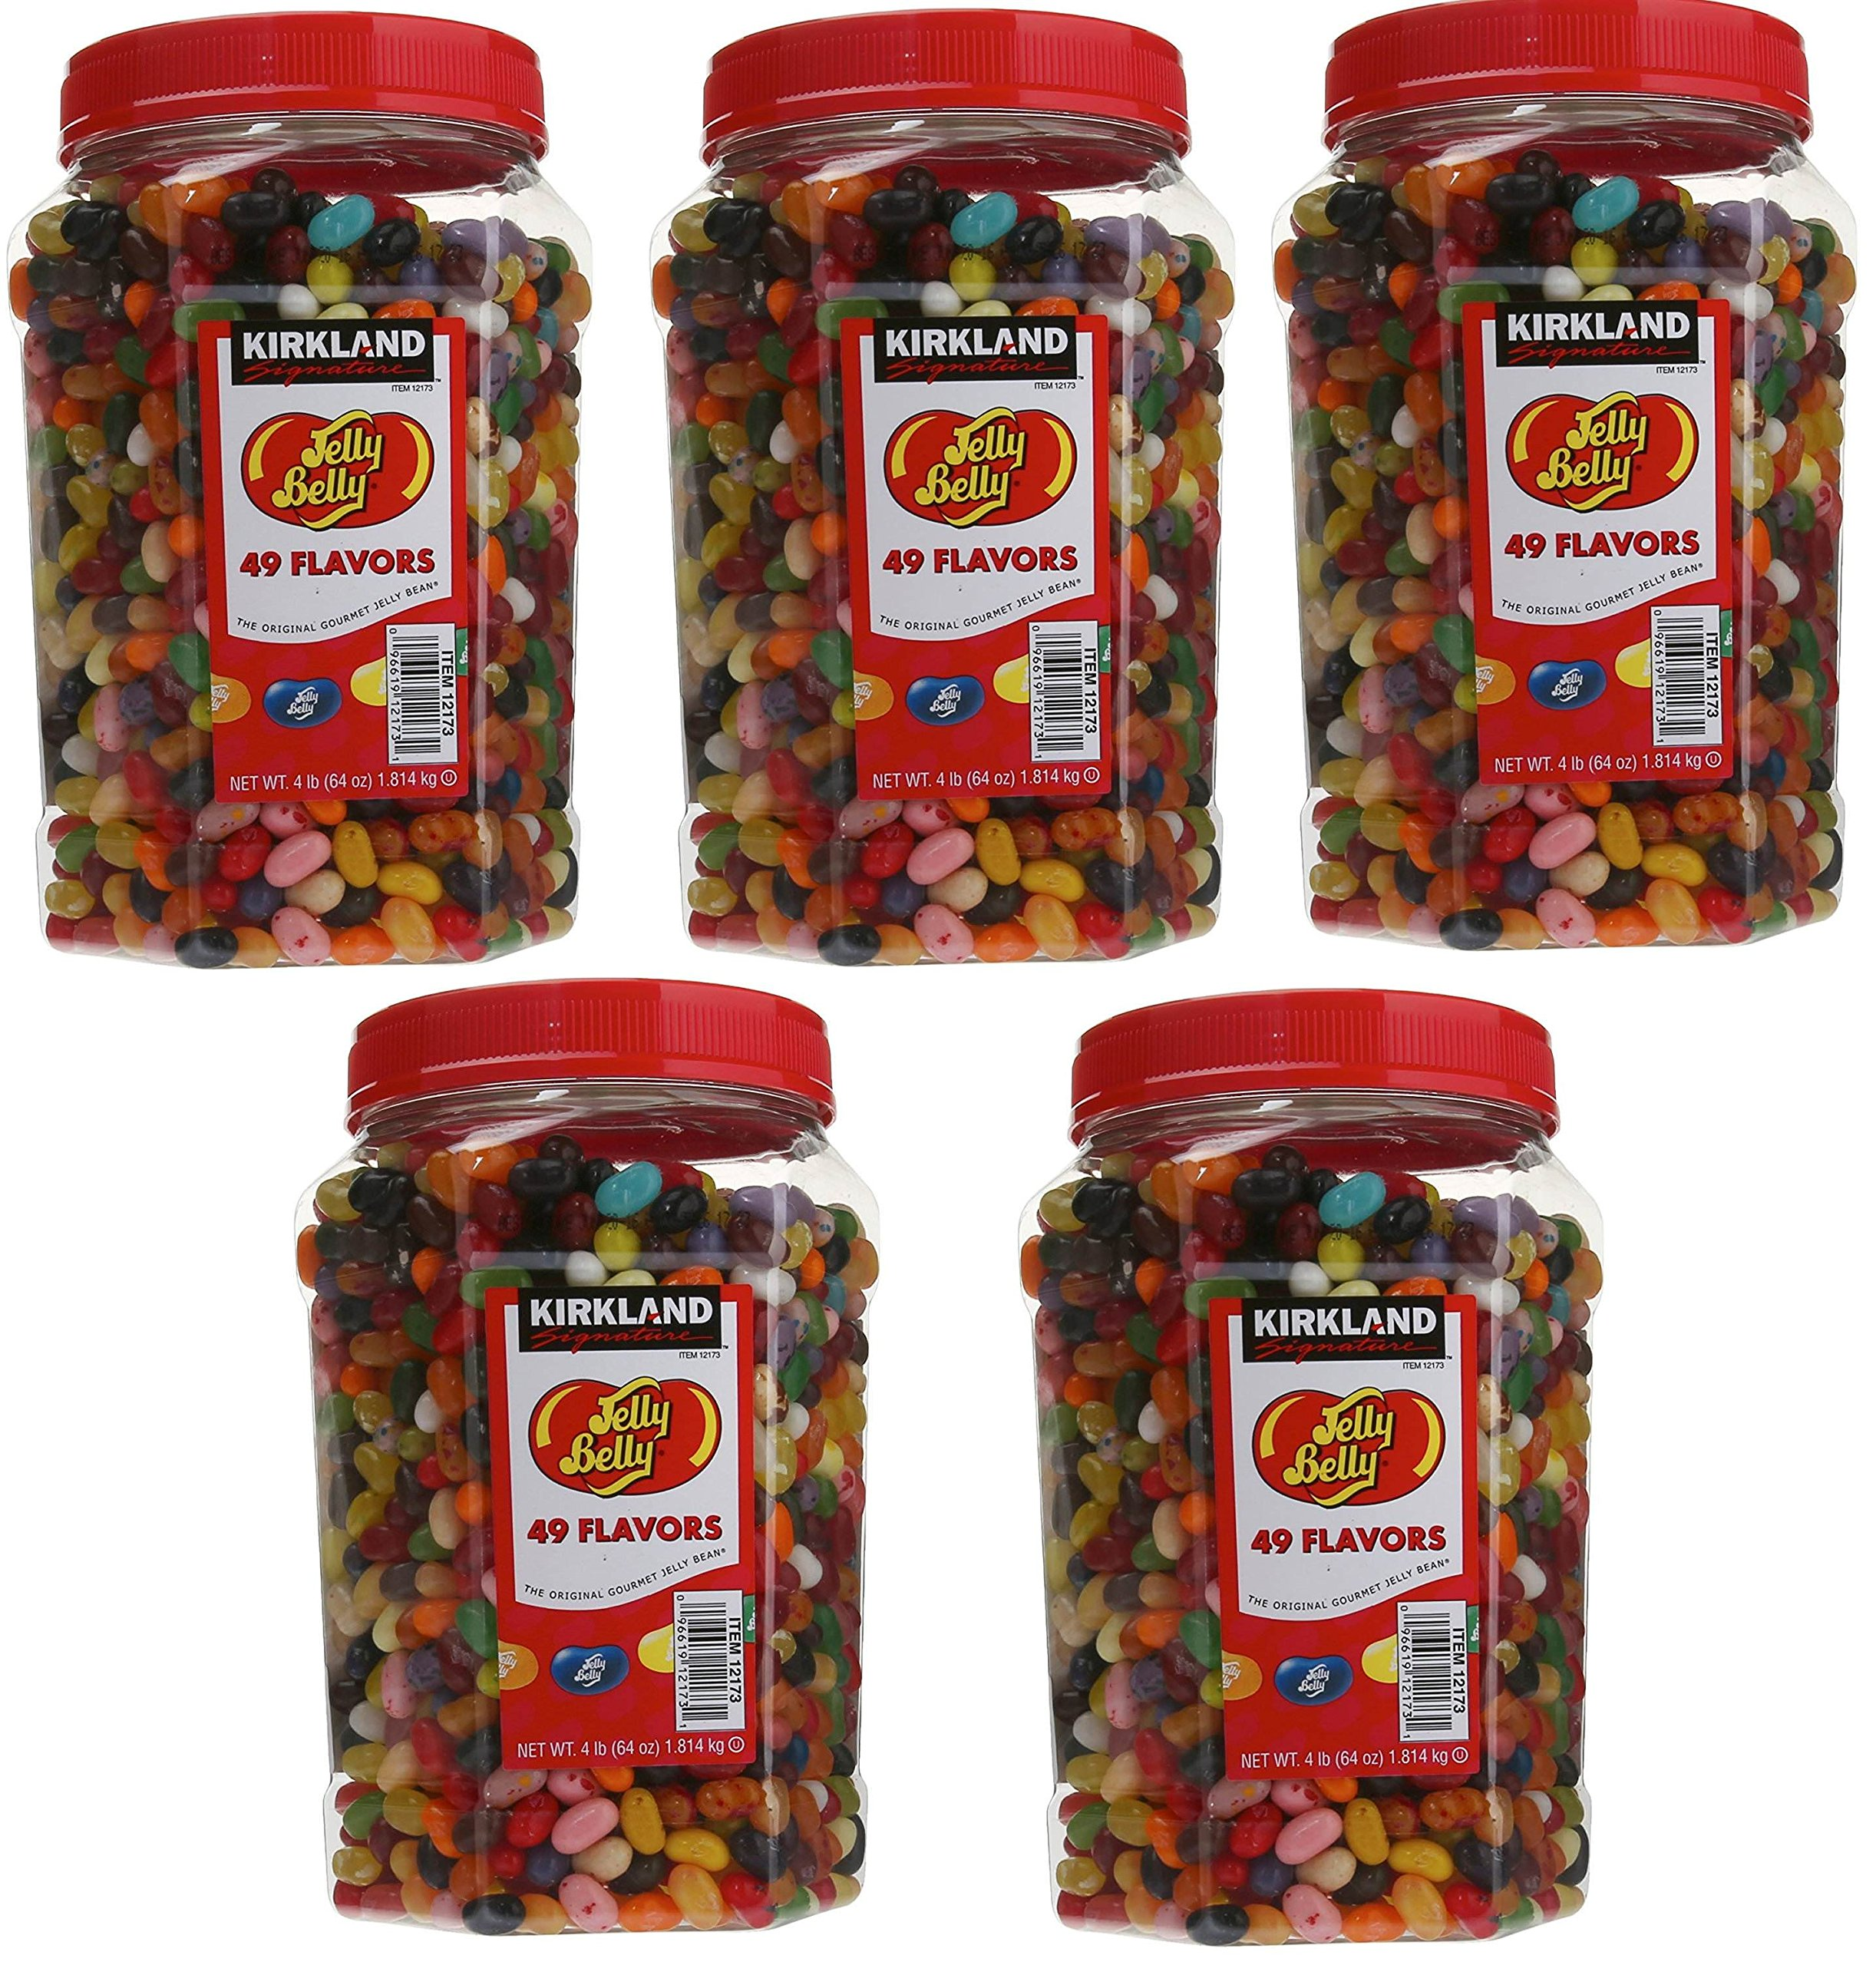 Kirkland Signature Jelly Belly Jelly Beans, 20 Pounds by Kirkland Signature